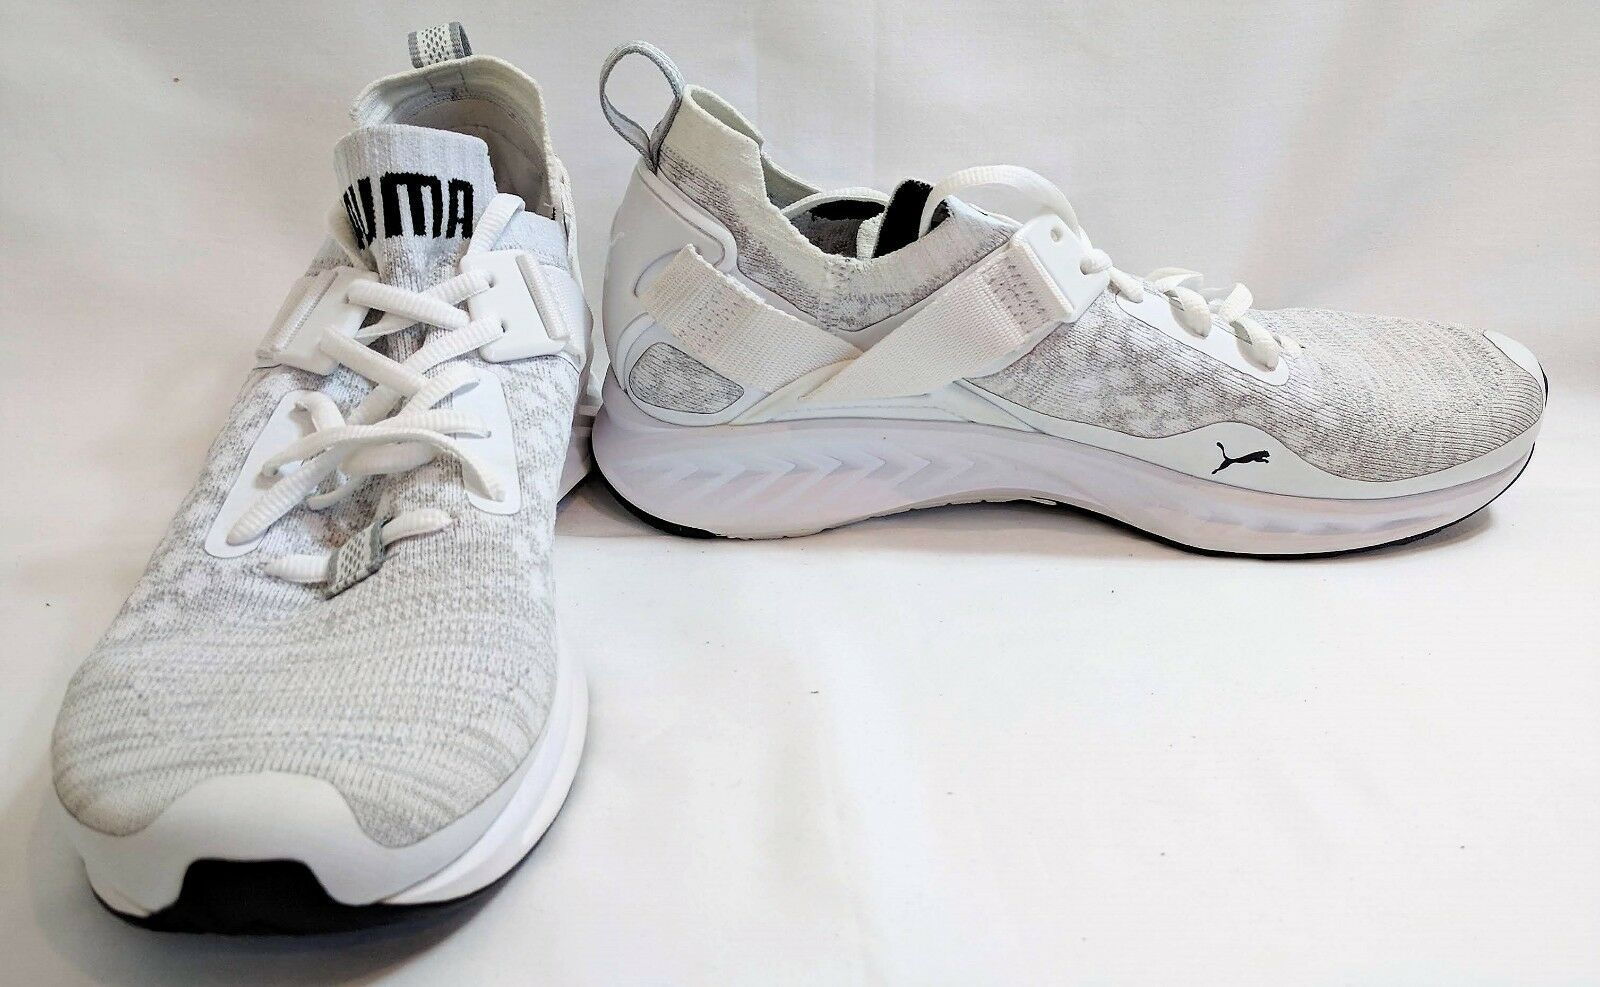 Puma Men's Ignite Evoknit Cross Low Cross-Trainer Shoes- White/Grey- US 9.5,US11